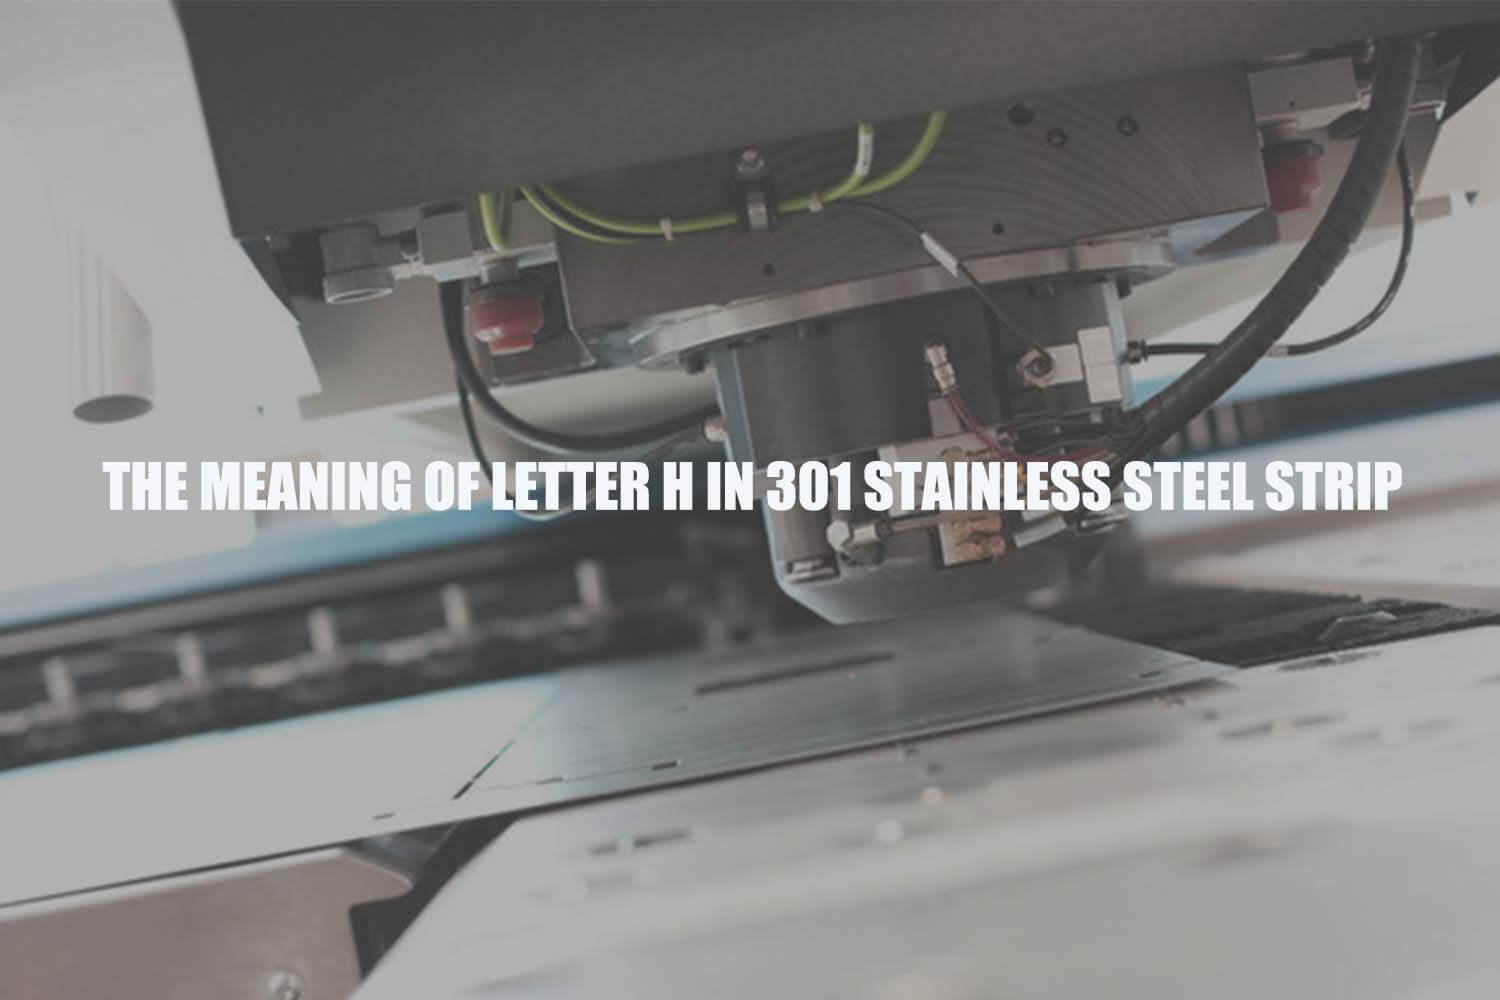 the-meaning-of-letter-h-in-301-stainless-steel-strip